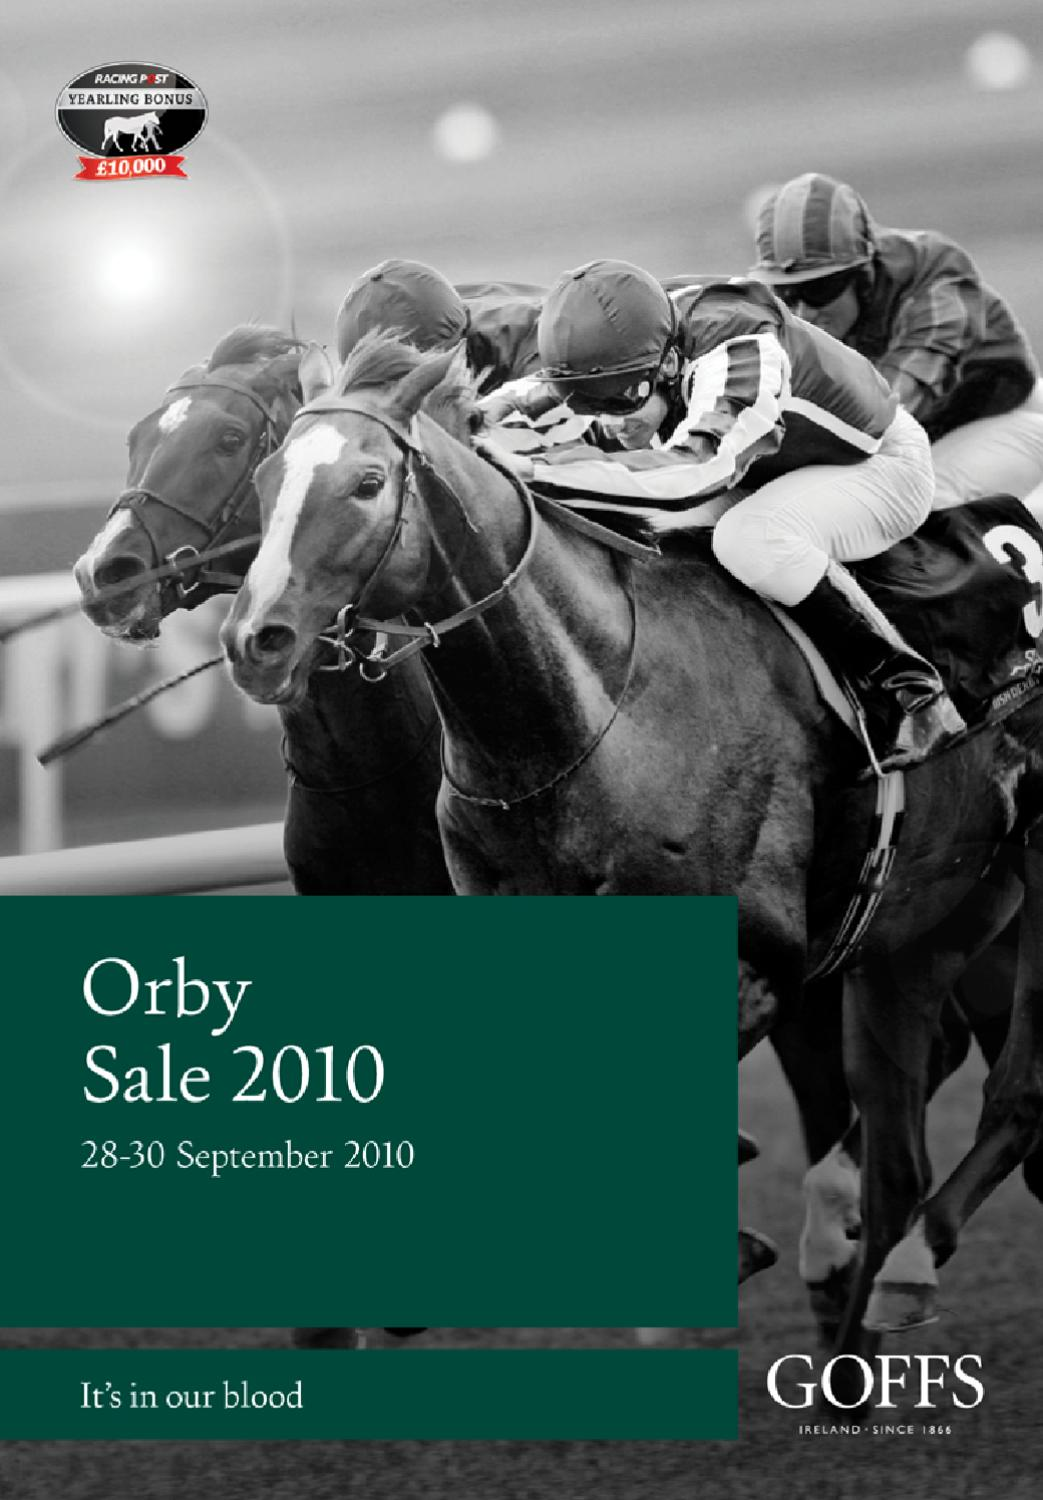 Goffs 2010 Orby Yearling Sale By Goffs Issuu